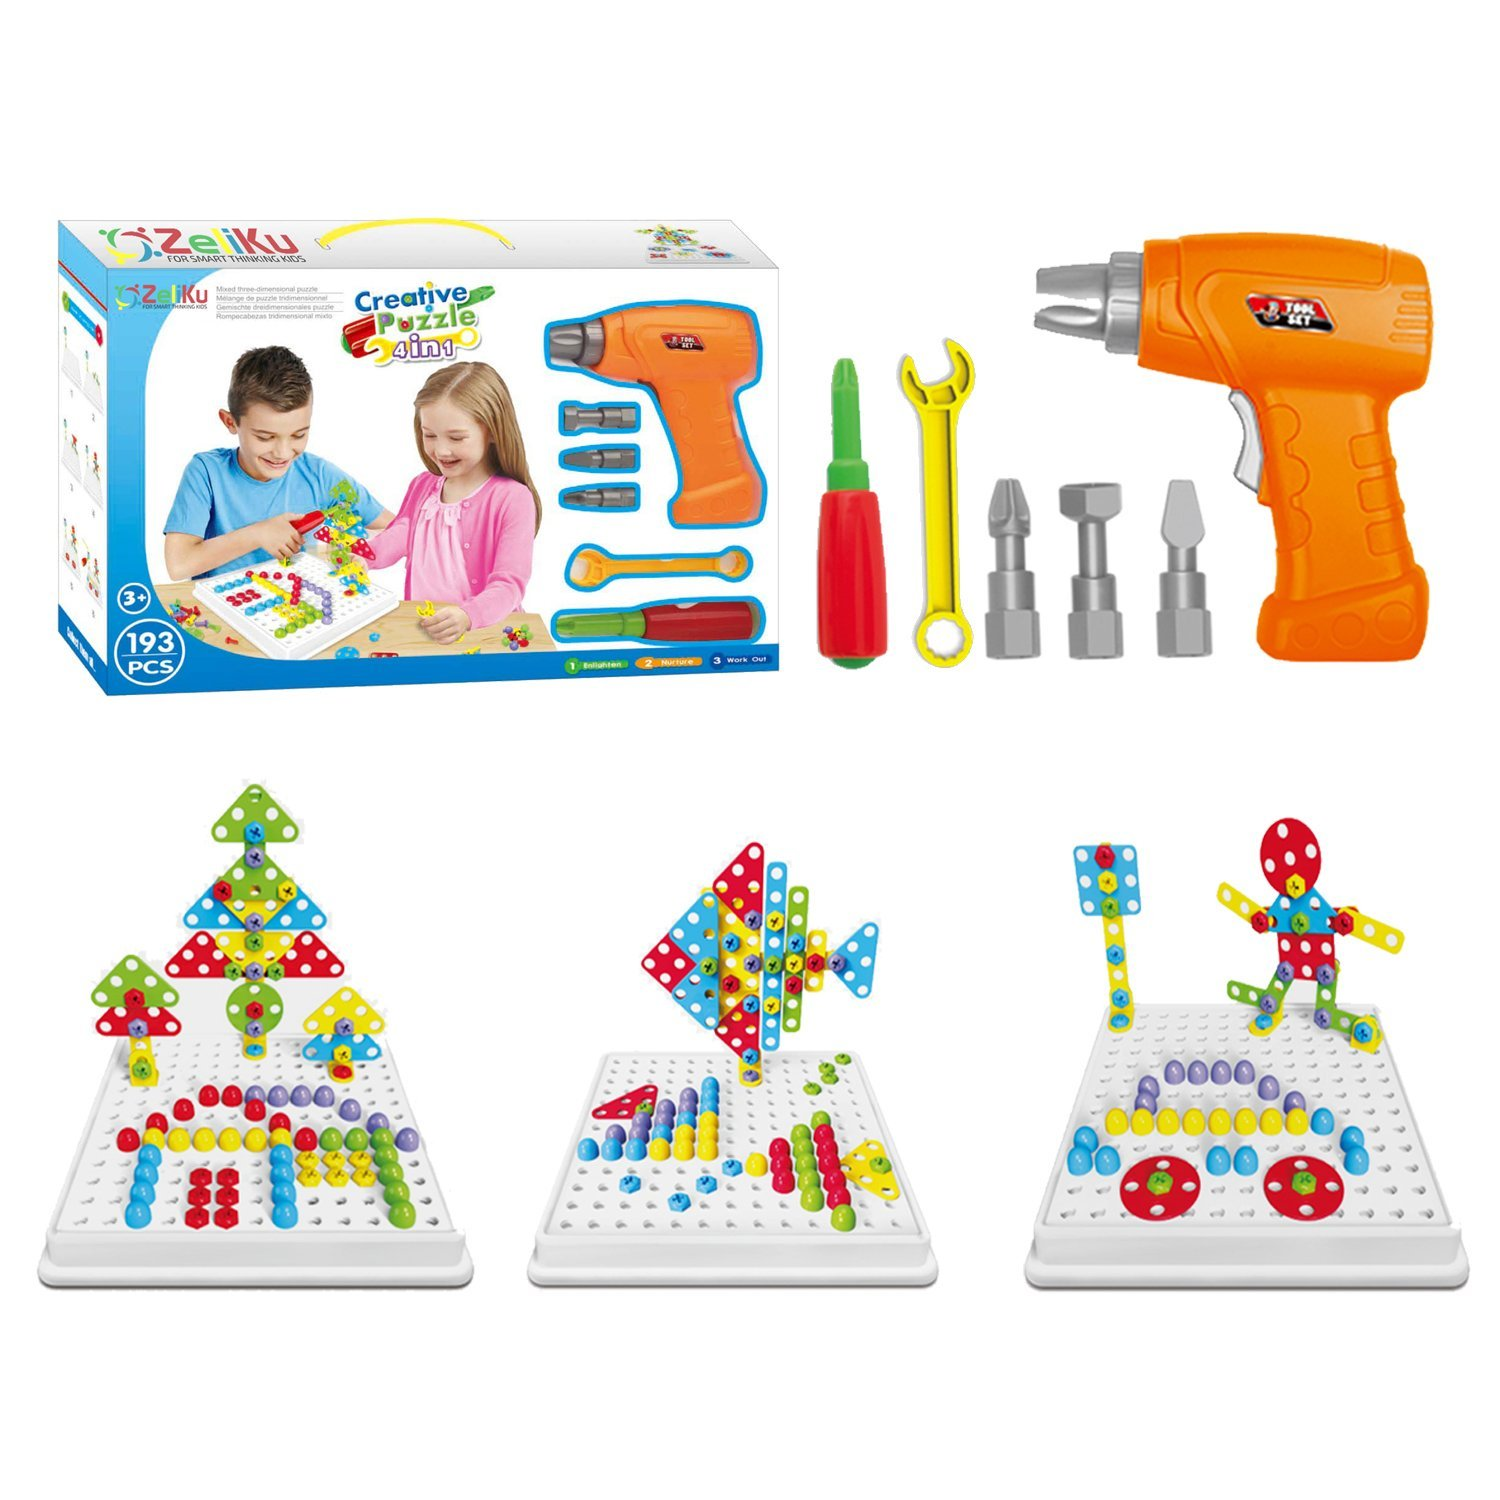 Educational Design and Drill toy Building toys set - 193 ...